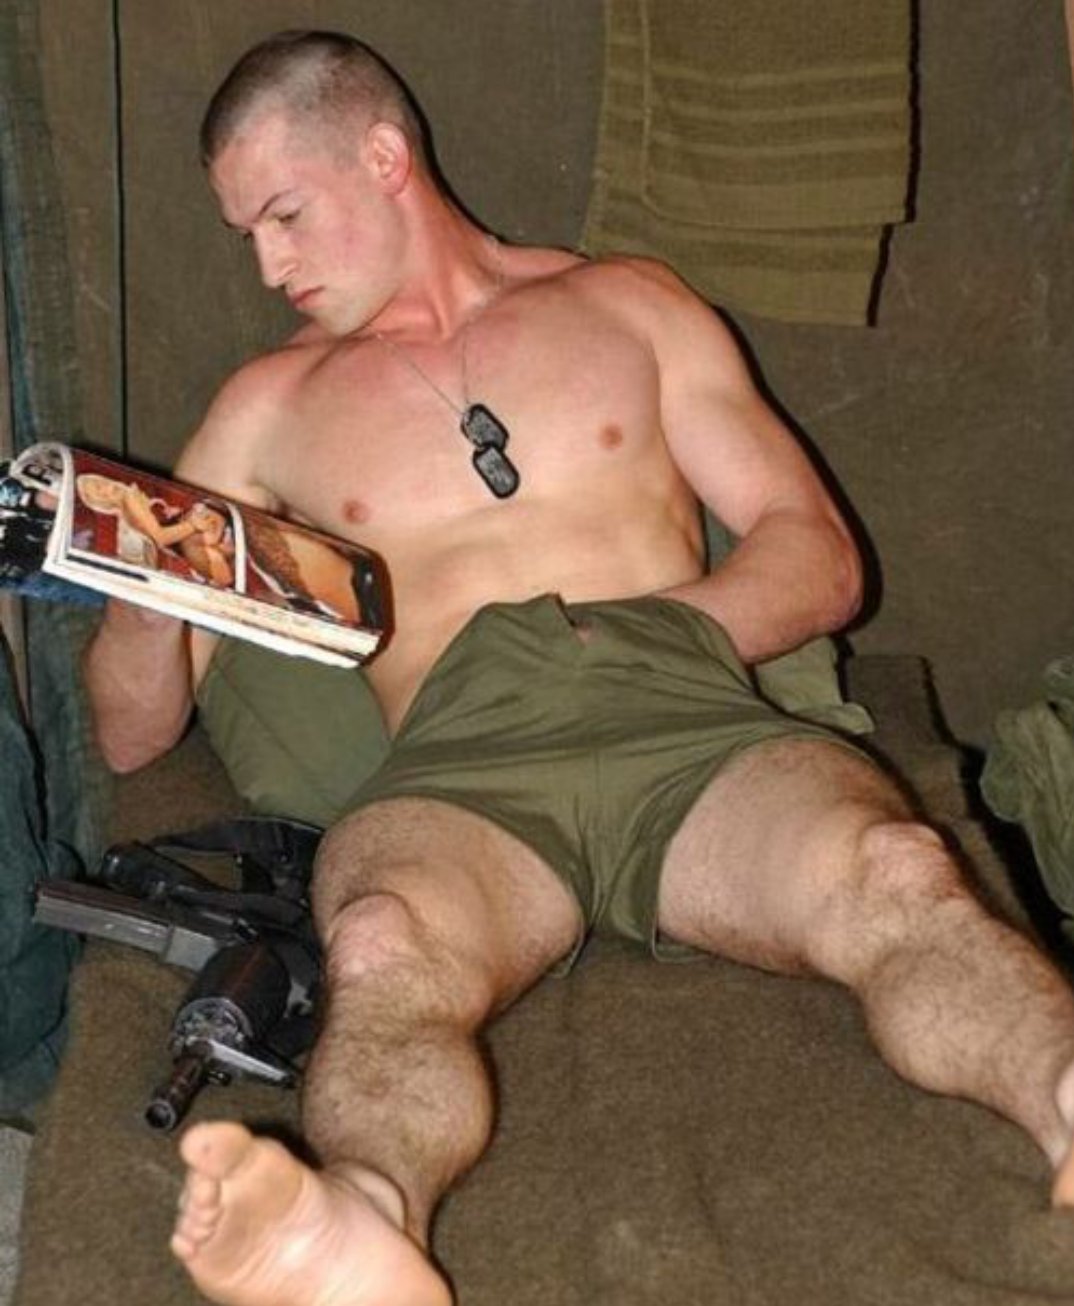 Male Adult Physical Exam Army Fetish And Naked Military Group Men Gay Extra Training For